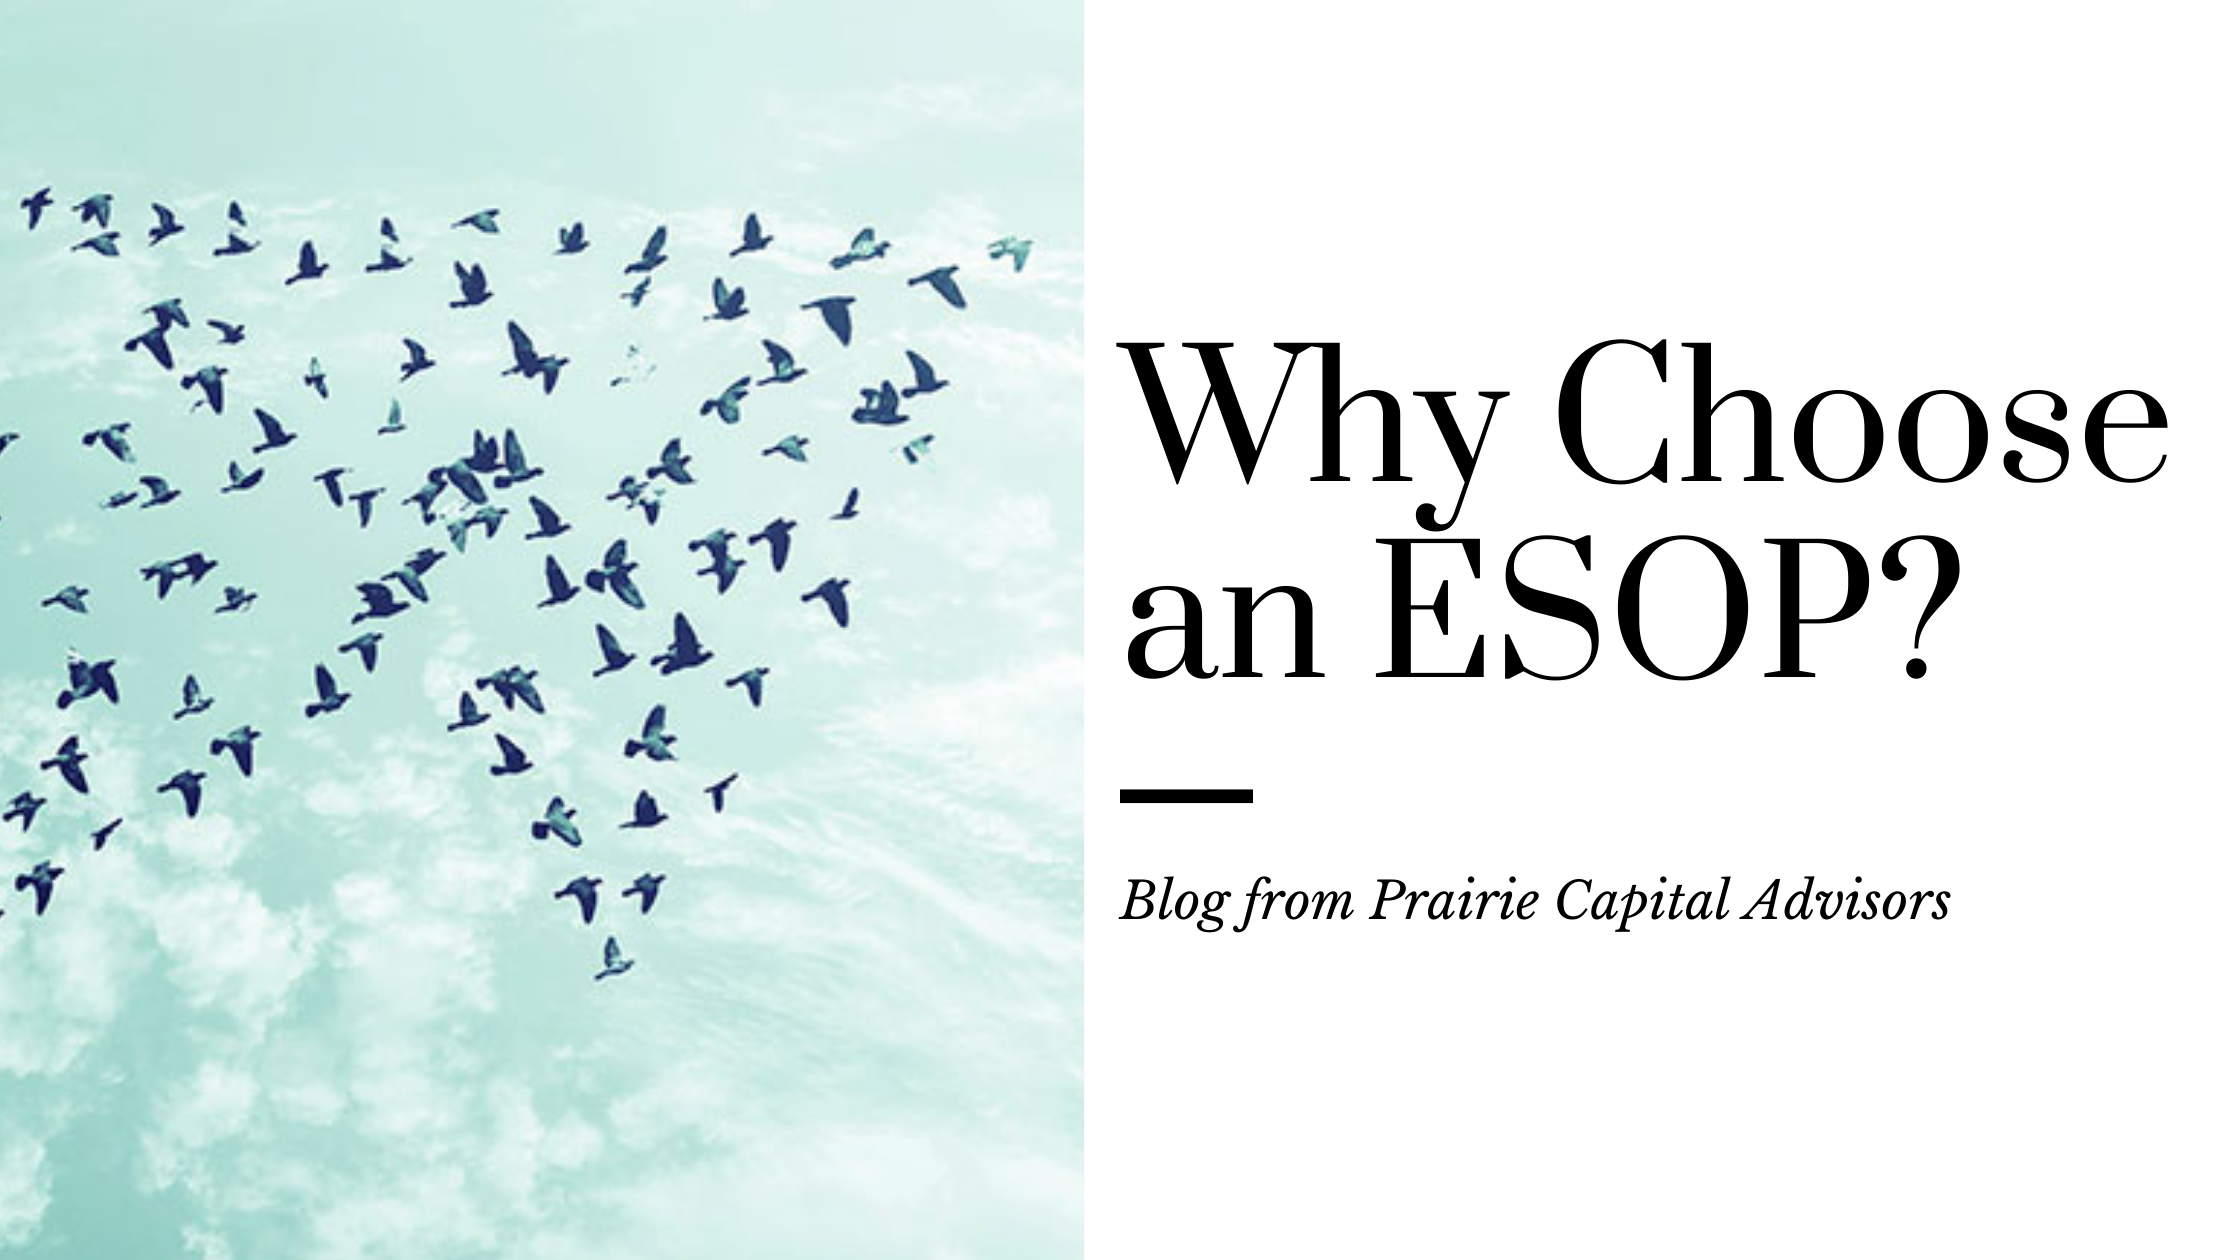 Why Choose an ESOP?